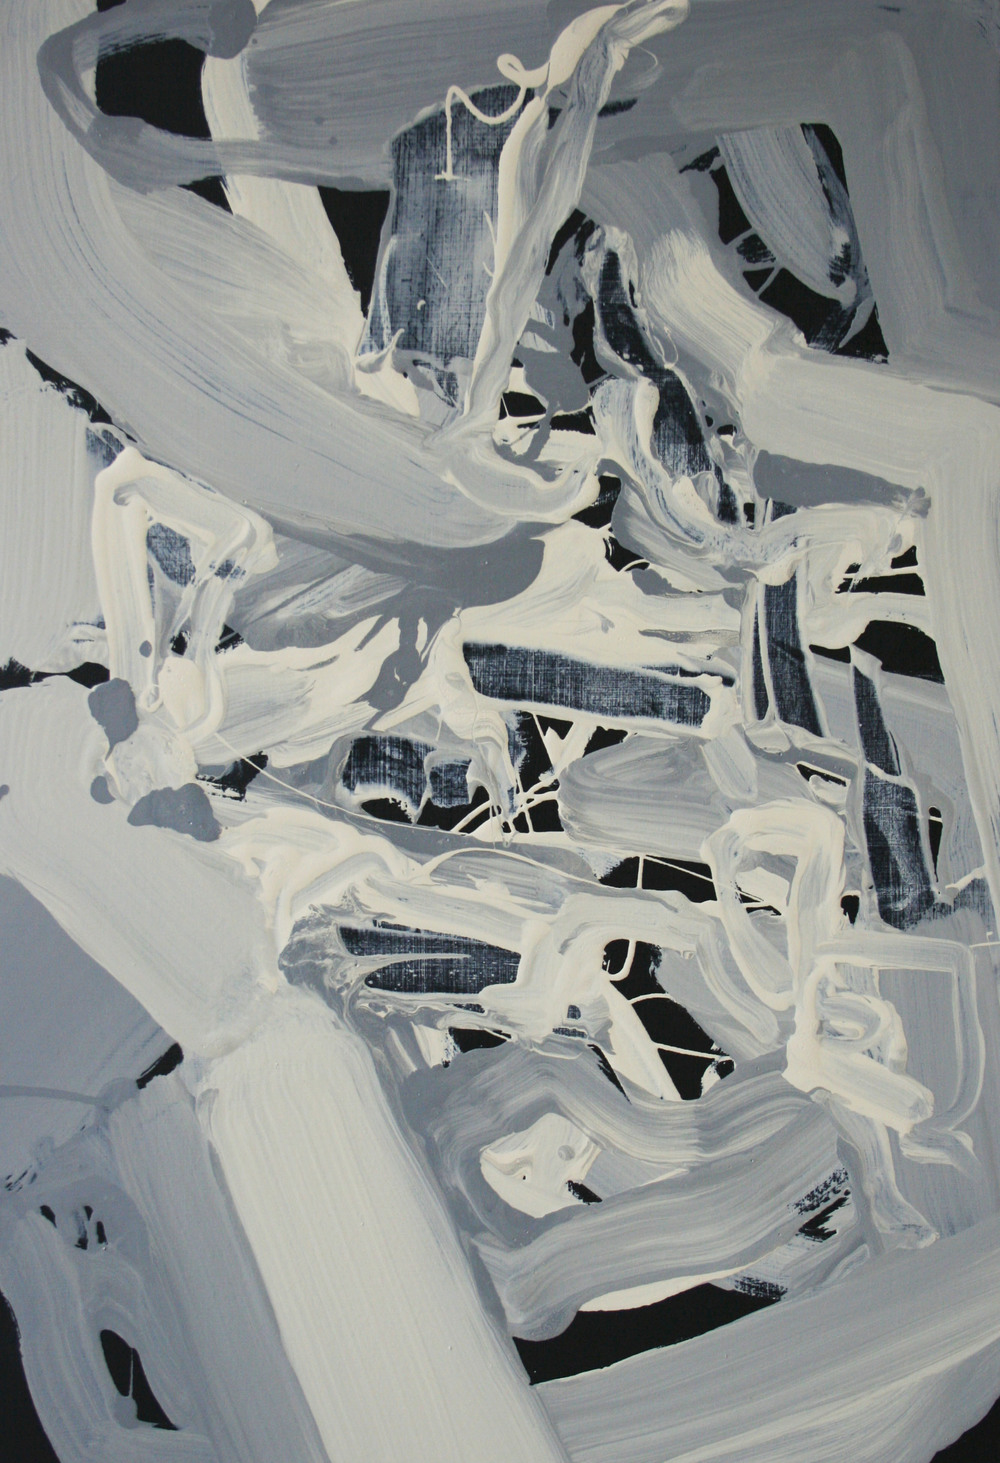 grey painting med 2 2011 oil on lacquered wood 44 x 30.5cm low res.jpg